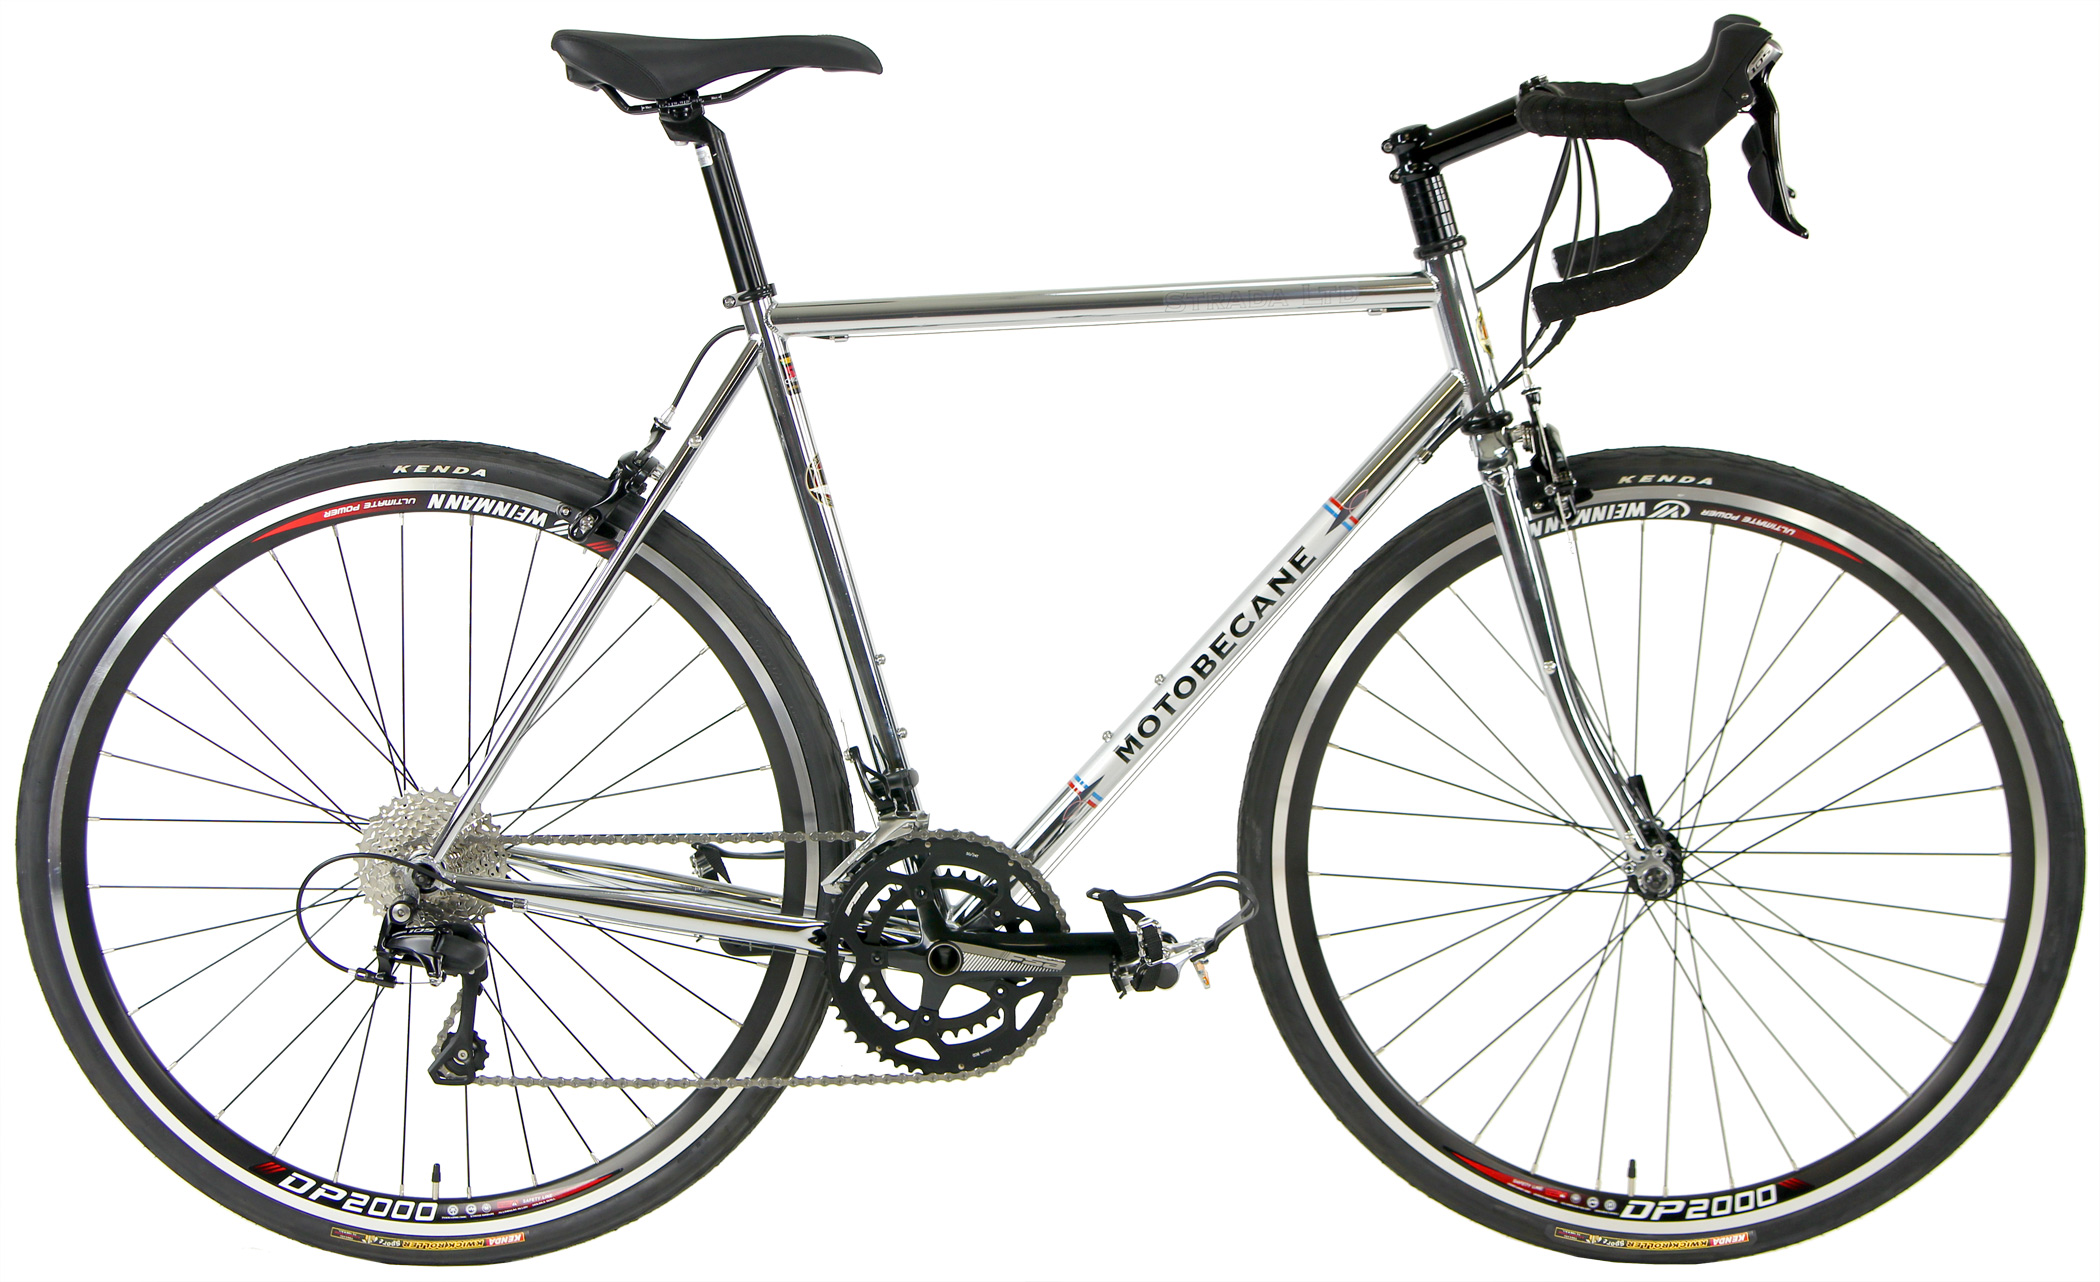 Bikes Motobecane Strada LTD 2.0 Reynolds Chromoly Steel Road Bike Shimano 105 Image